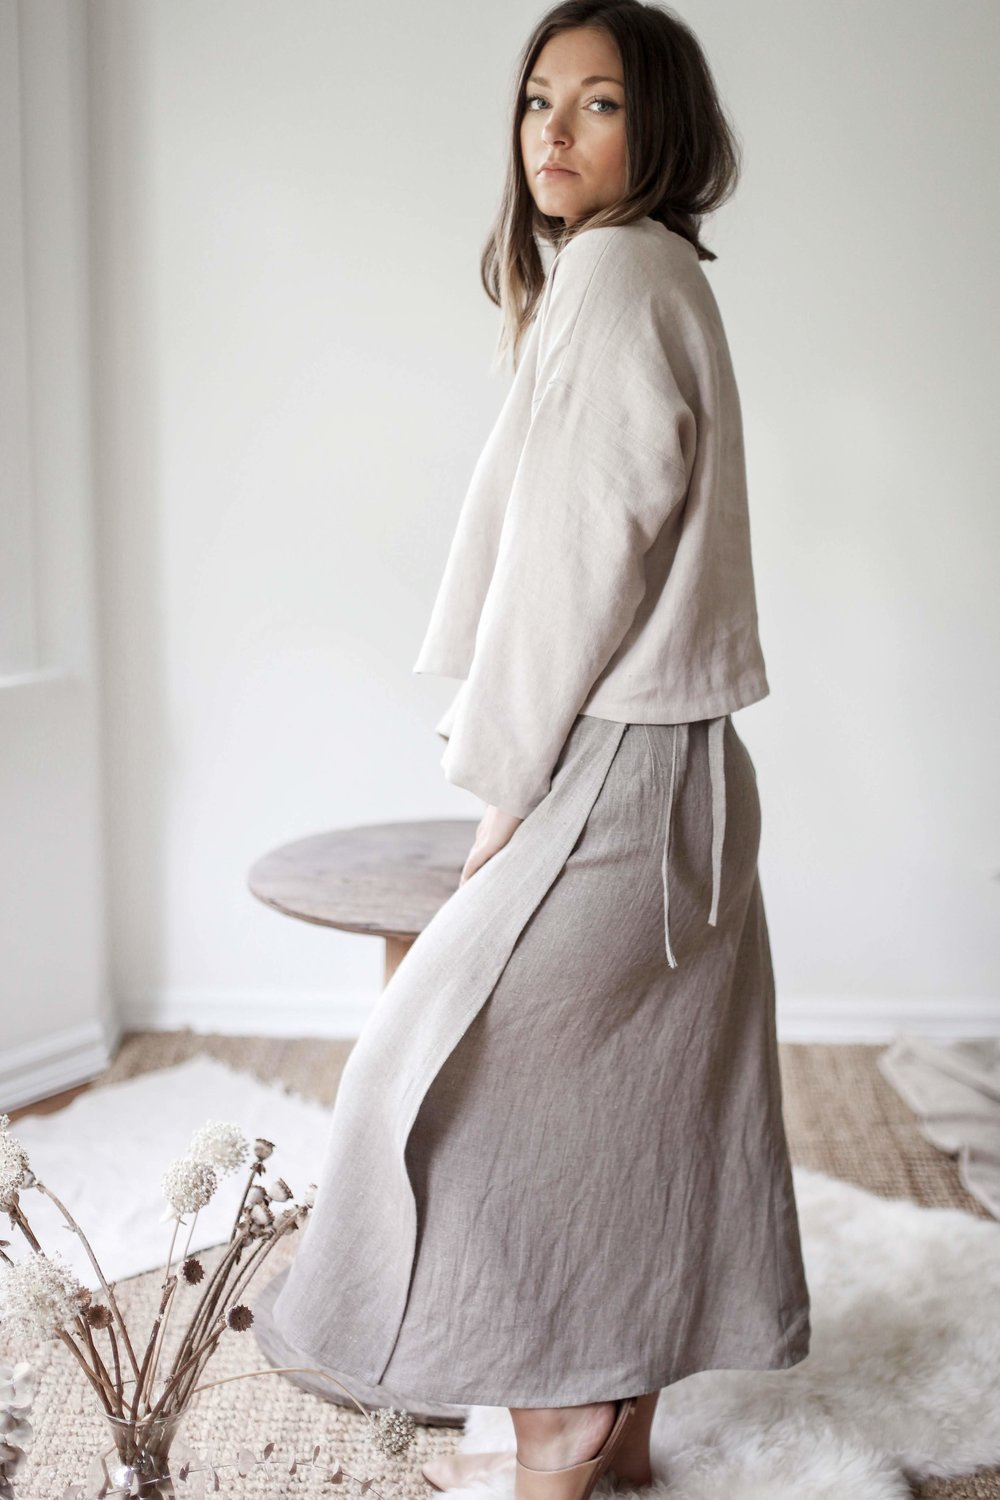 nomi-designs_madison-long-sleeve-top_gleam_natural-linen-top_side-with-wrap-skirt.jpg